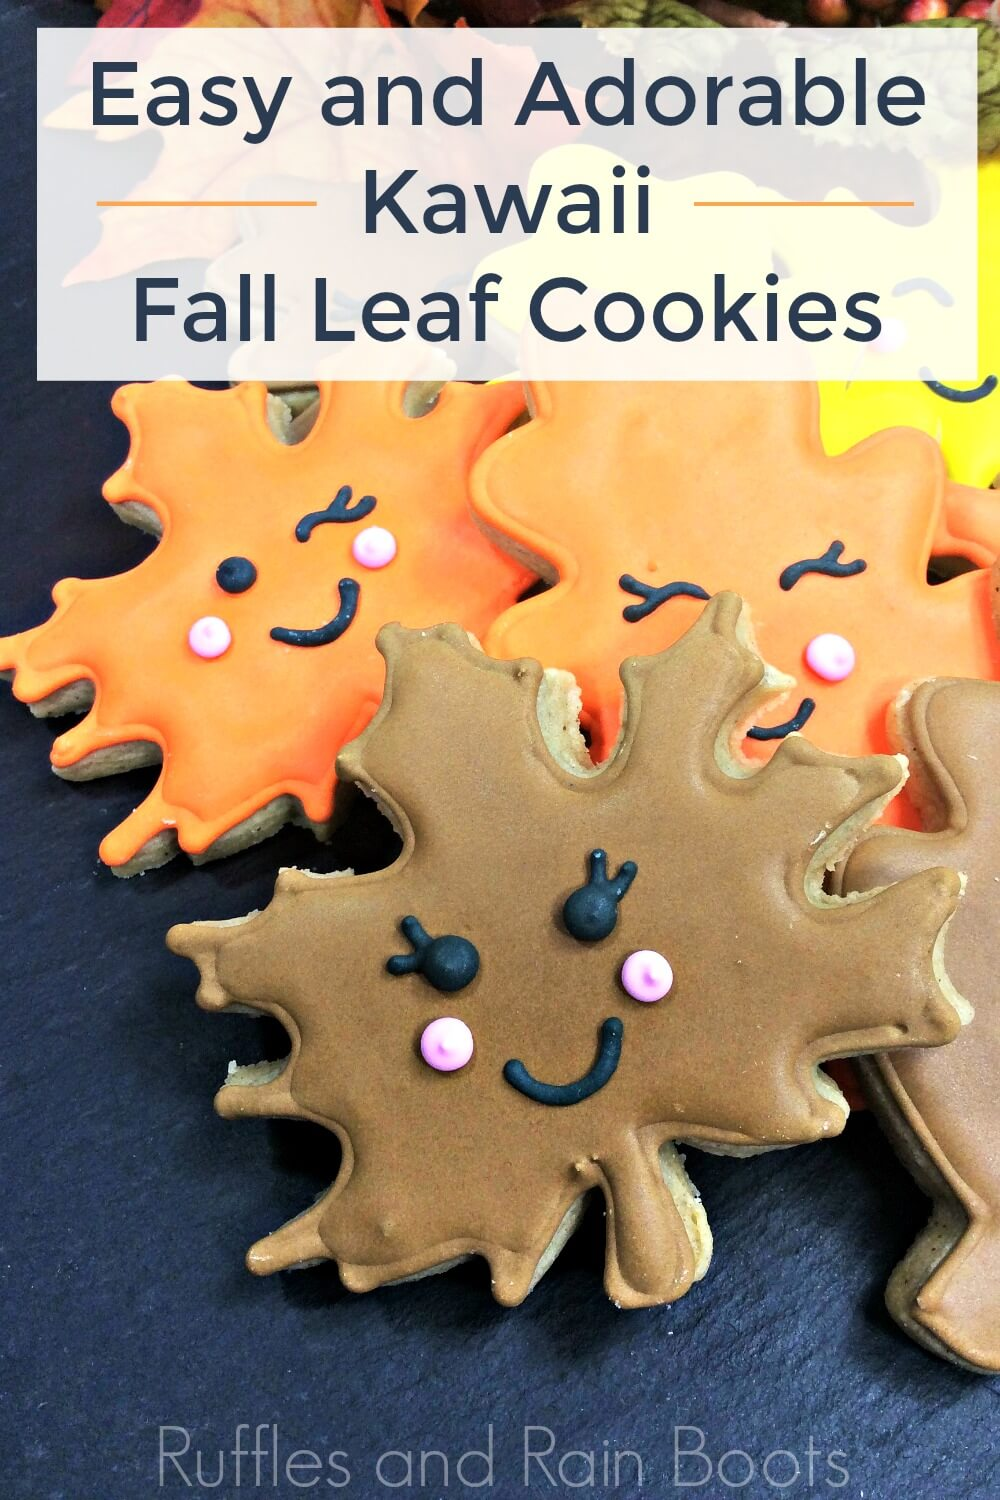 close up of leaf-shaped cookies for fall with text which reads easy and Adorable Kawaii Fall Leaf Cookies